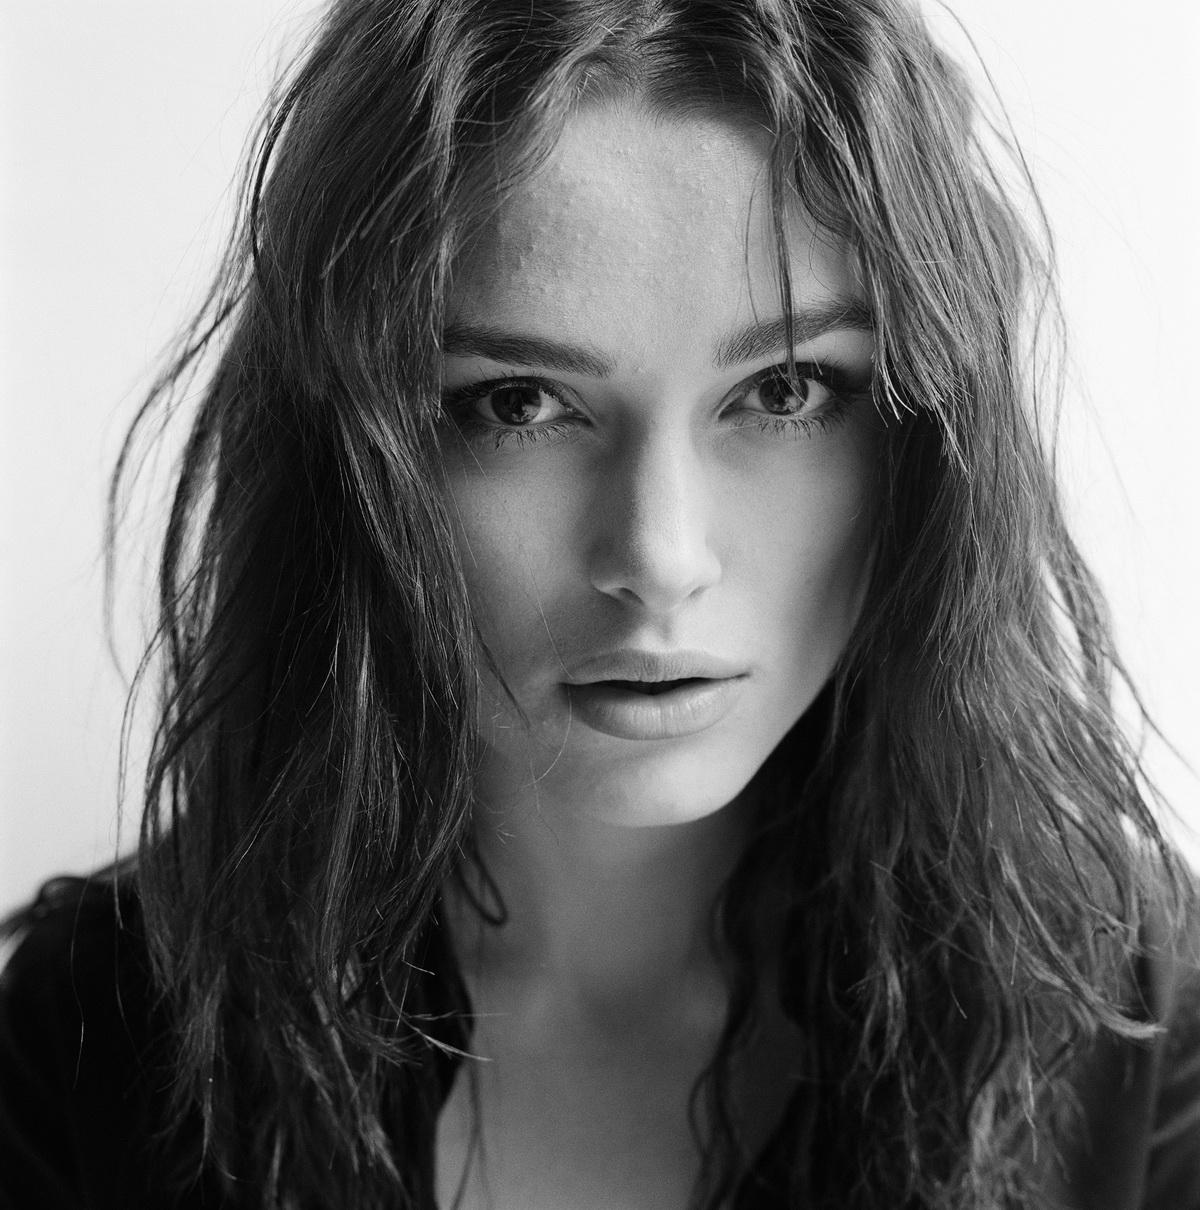 Keira Knightley - Nino Munoz PhotoShoot - Photo 13 | Celebrity Photo Gallery | Vettri.Net